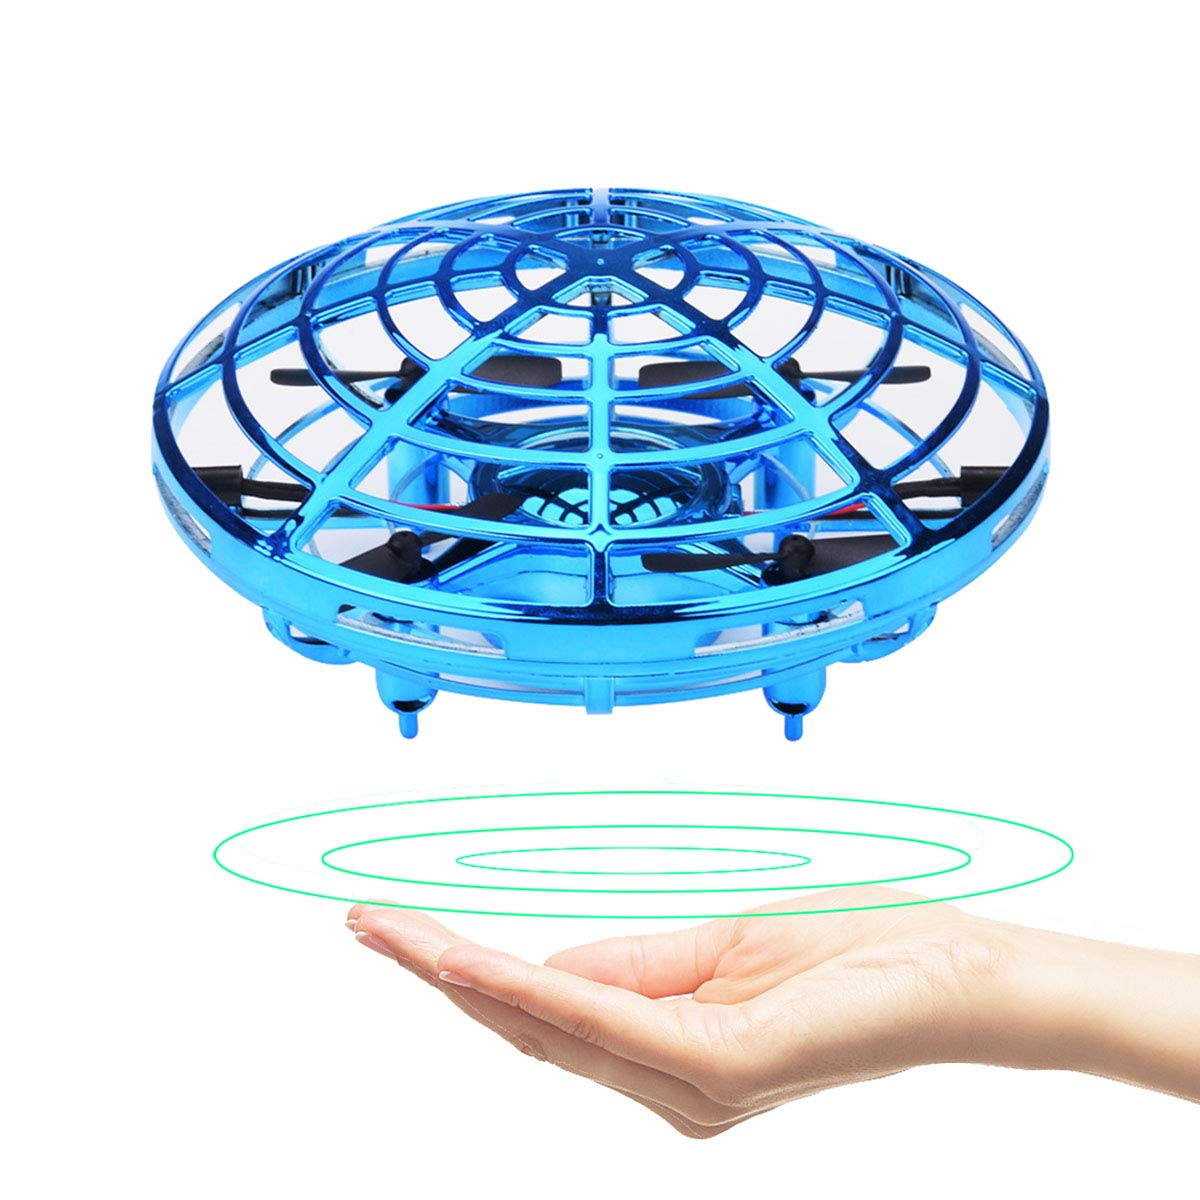 GuangTouL Mini Drone for Kids Adults, Hand Controlled Flying Ball, Quadcopter Interactive Infrared Induction Flying Toys, 360° Rotation Free Hover Helicopter Beginner Drones Flying Toys by GuangTouL